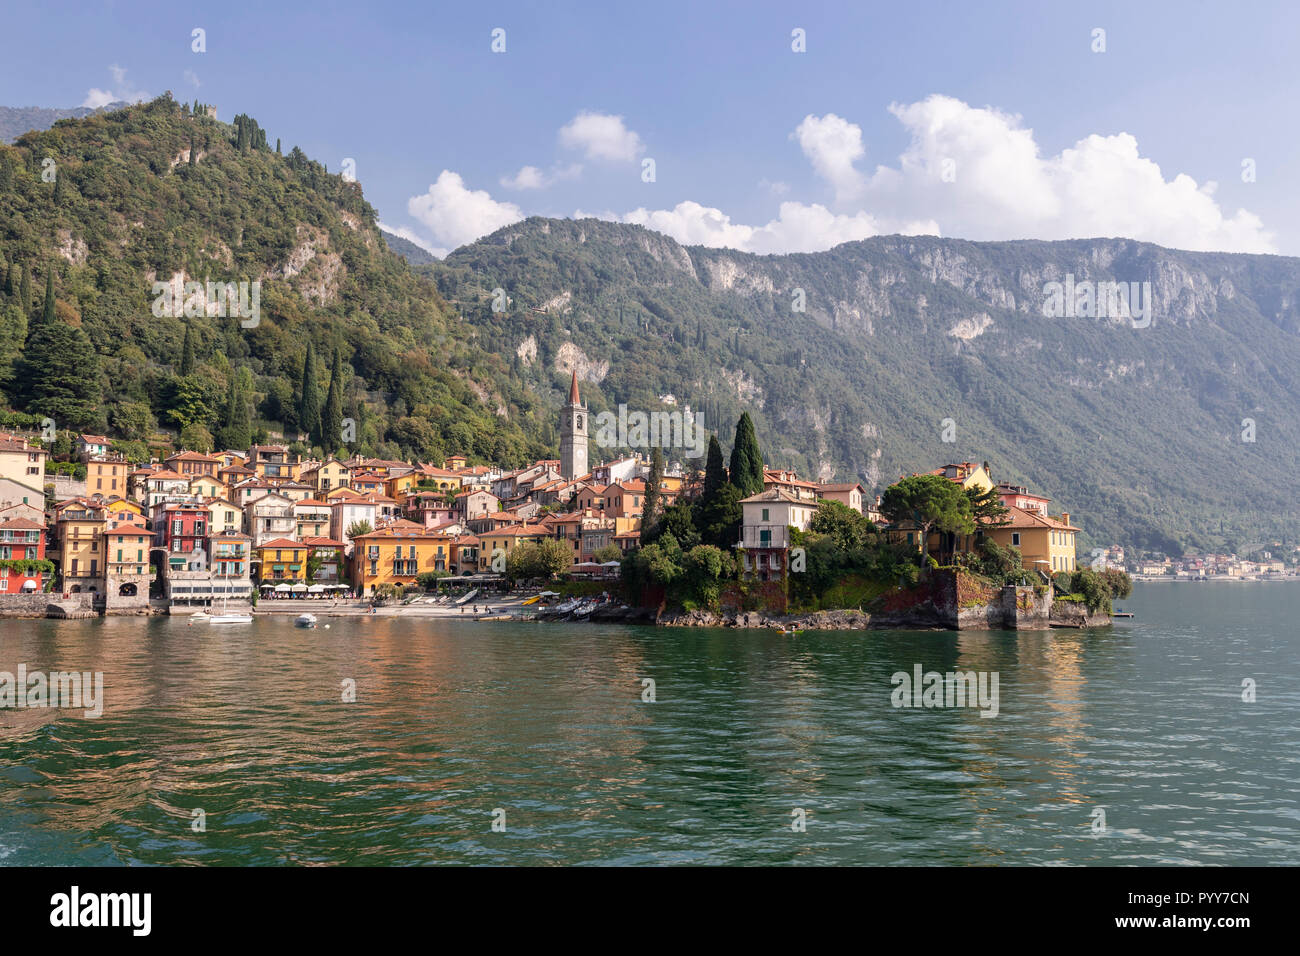 The town of Varenna on Lake Como in northern ItalyStock Photo